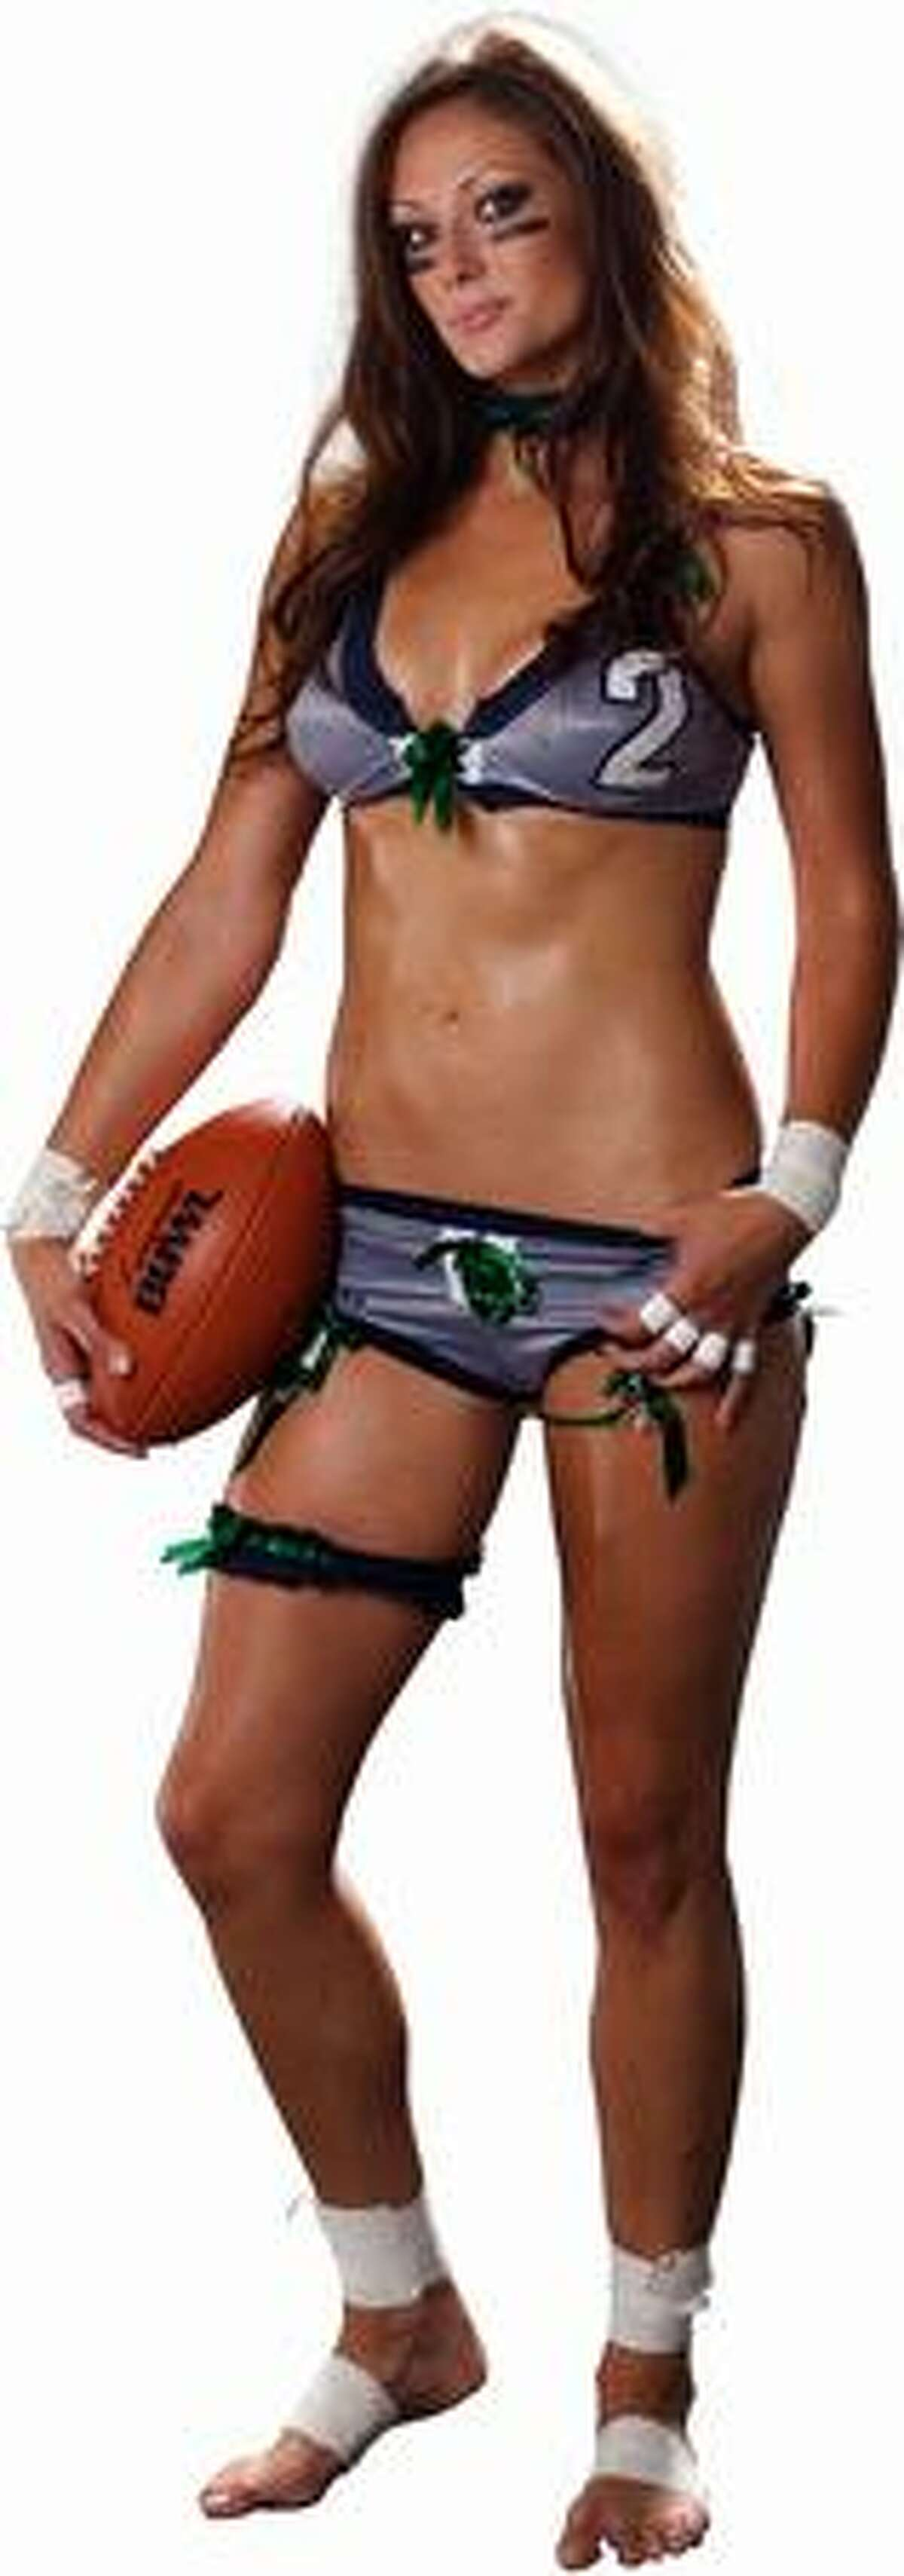 2. Jenna Bloczynski: Seattle Mist lingerie football player is a sassy brunette from Graham who will knock your socks off whether you're on the field or not. When I subbed for Kevin Calabro on his 710 ESPN Seattle radio show a few weeks ago, she was an in-studio guest, and I admit that my mind was in the gutter. -- Jim Moore (Lingerie Football League photo)